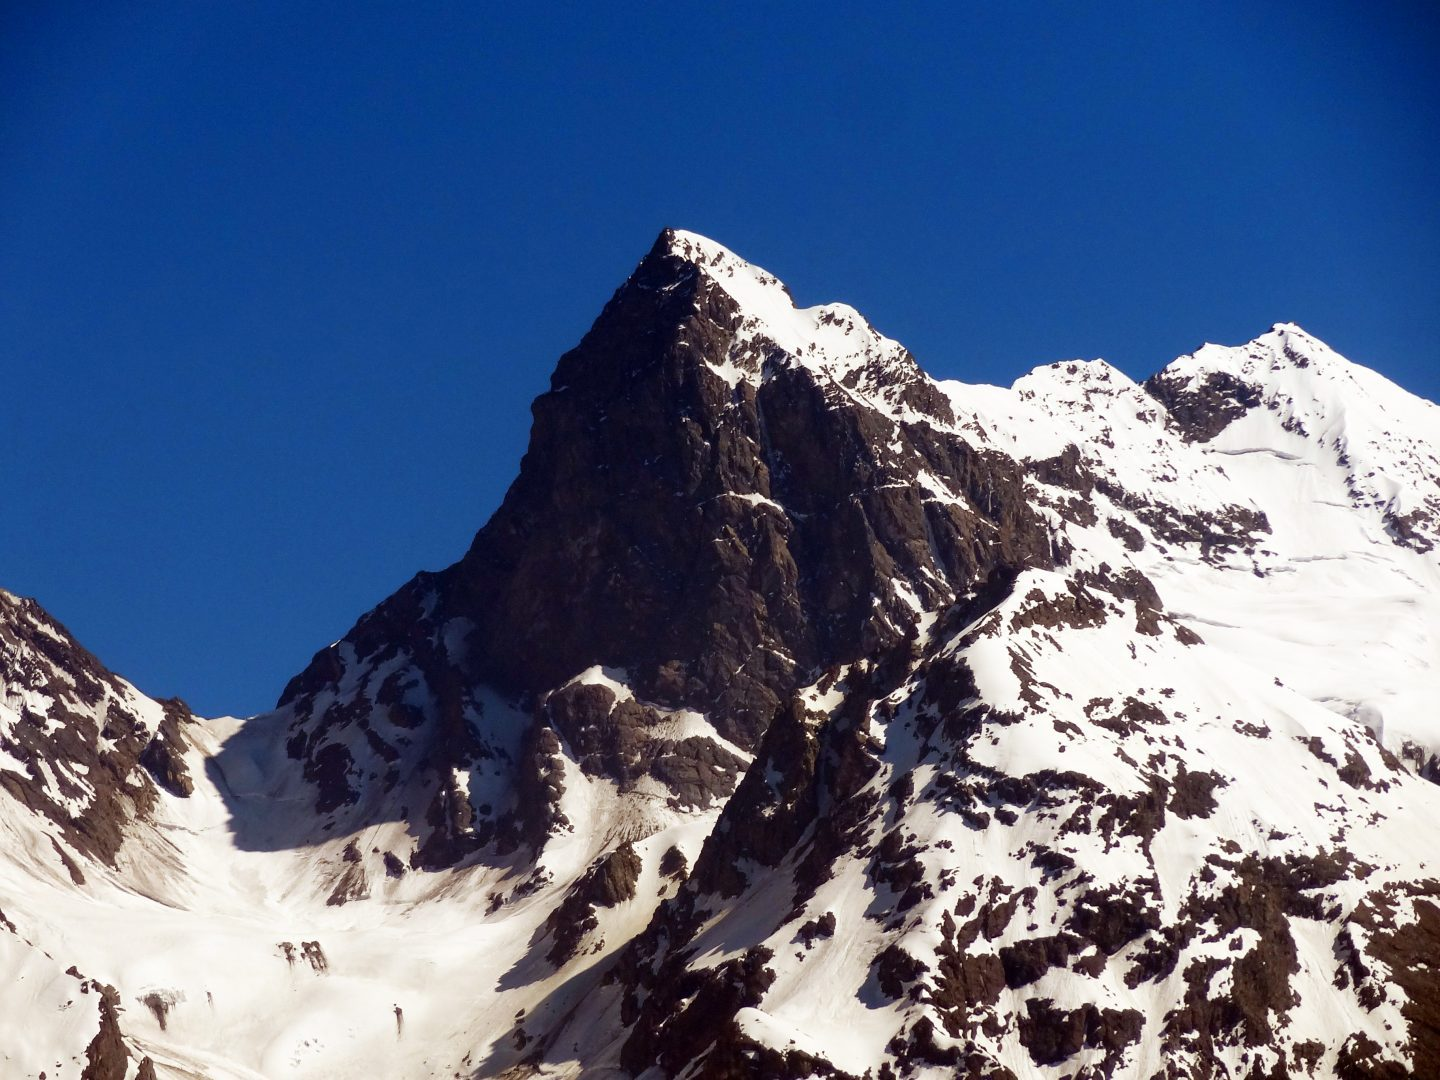 El Morado glaciated peak